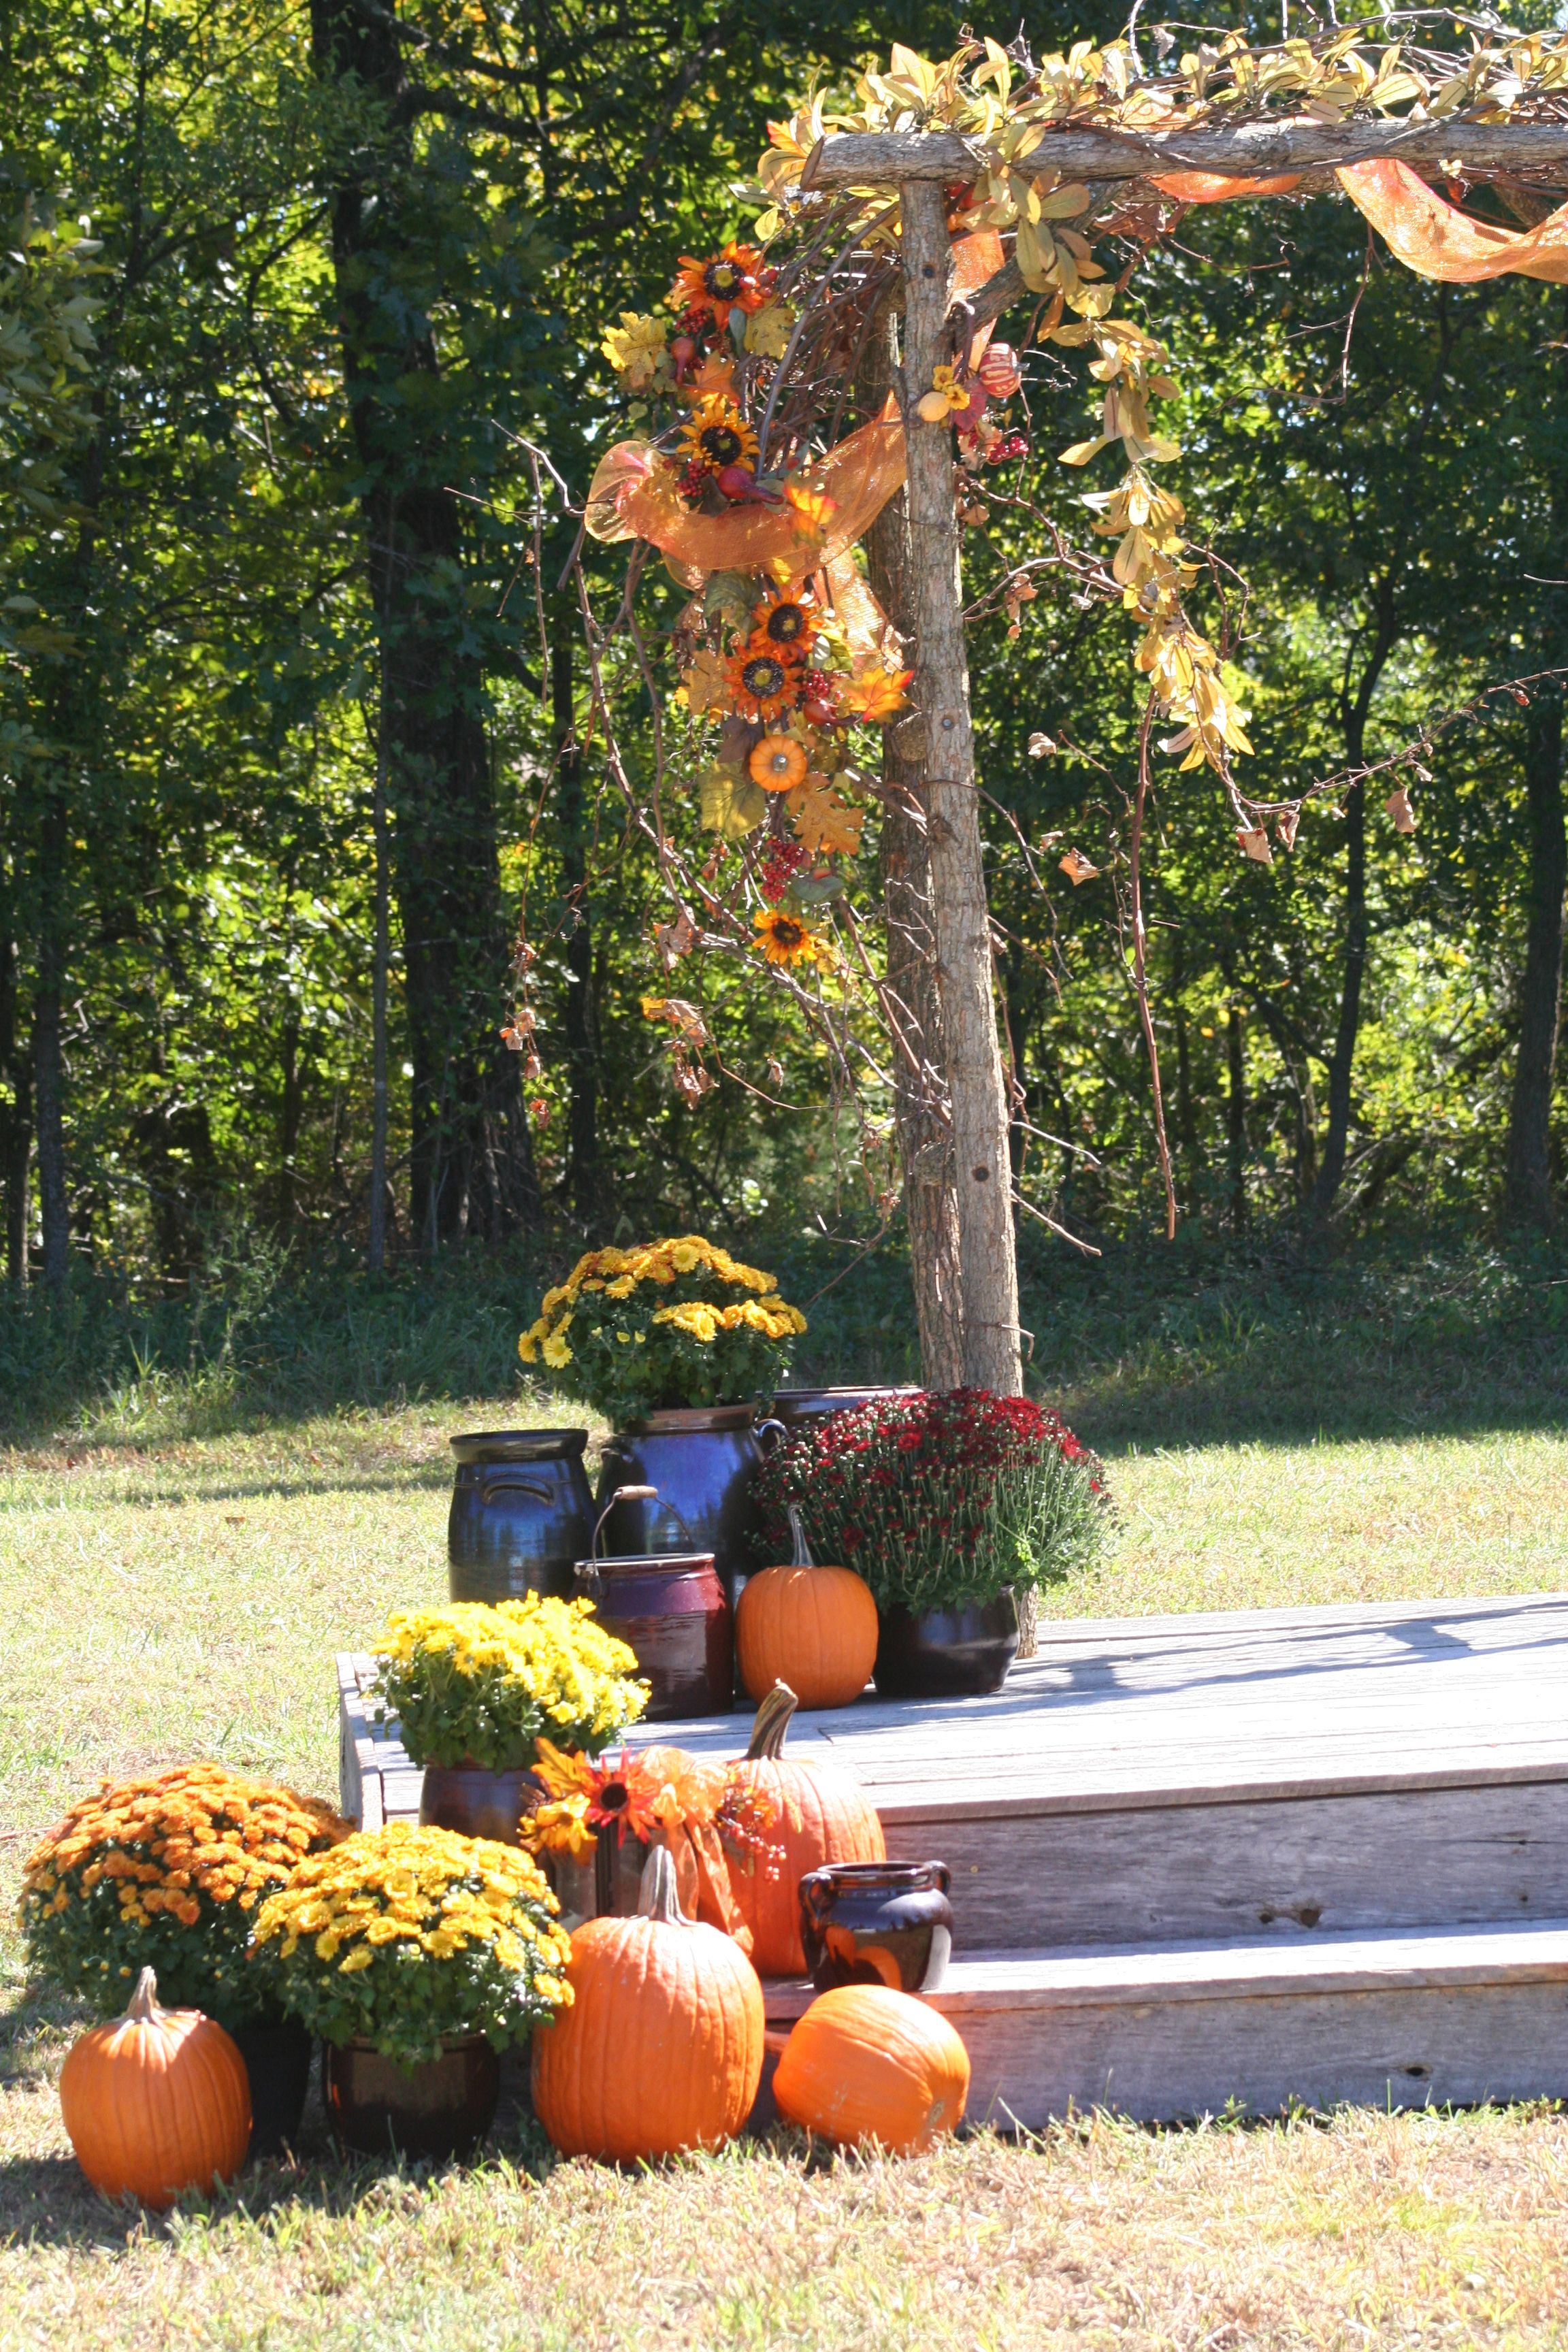 Rustic country fall wedding arch decorated with sunflowers rustic country fall wedding arch decorated with sunflowers grapevines orange tulle crocks junglespirit Image collections